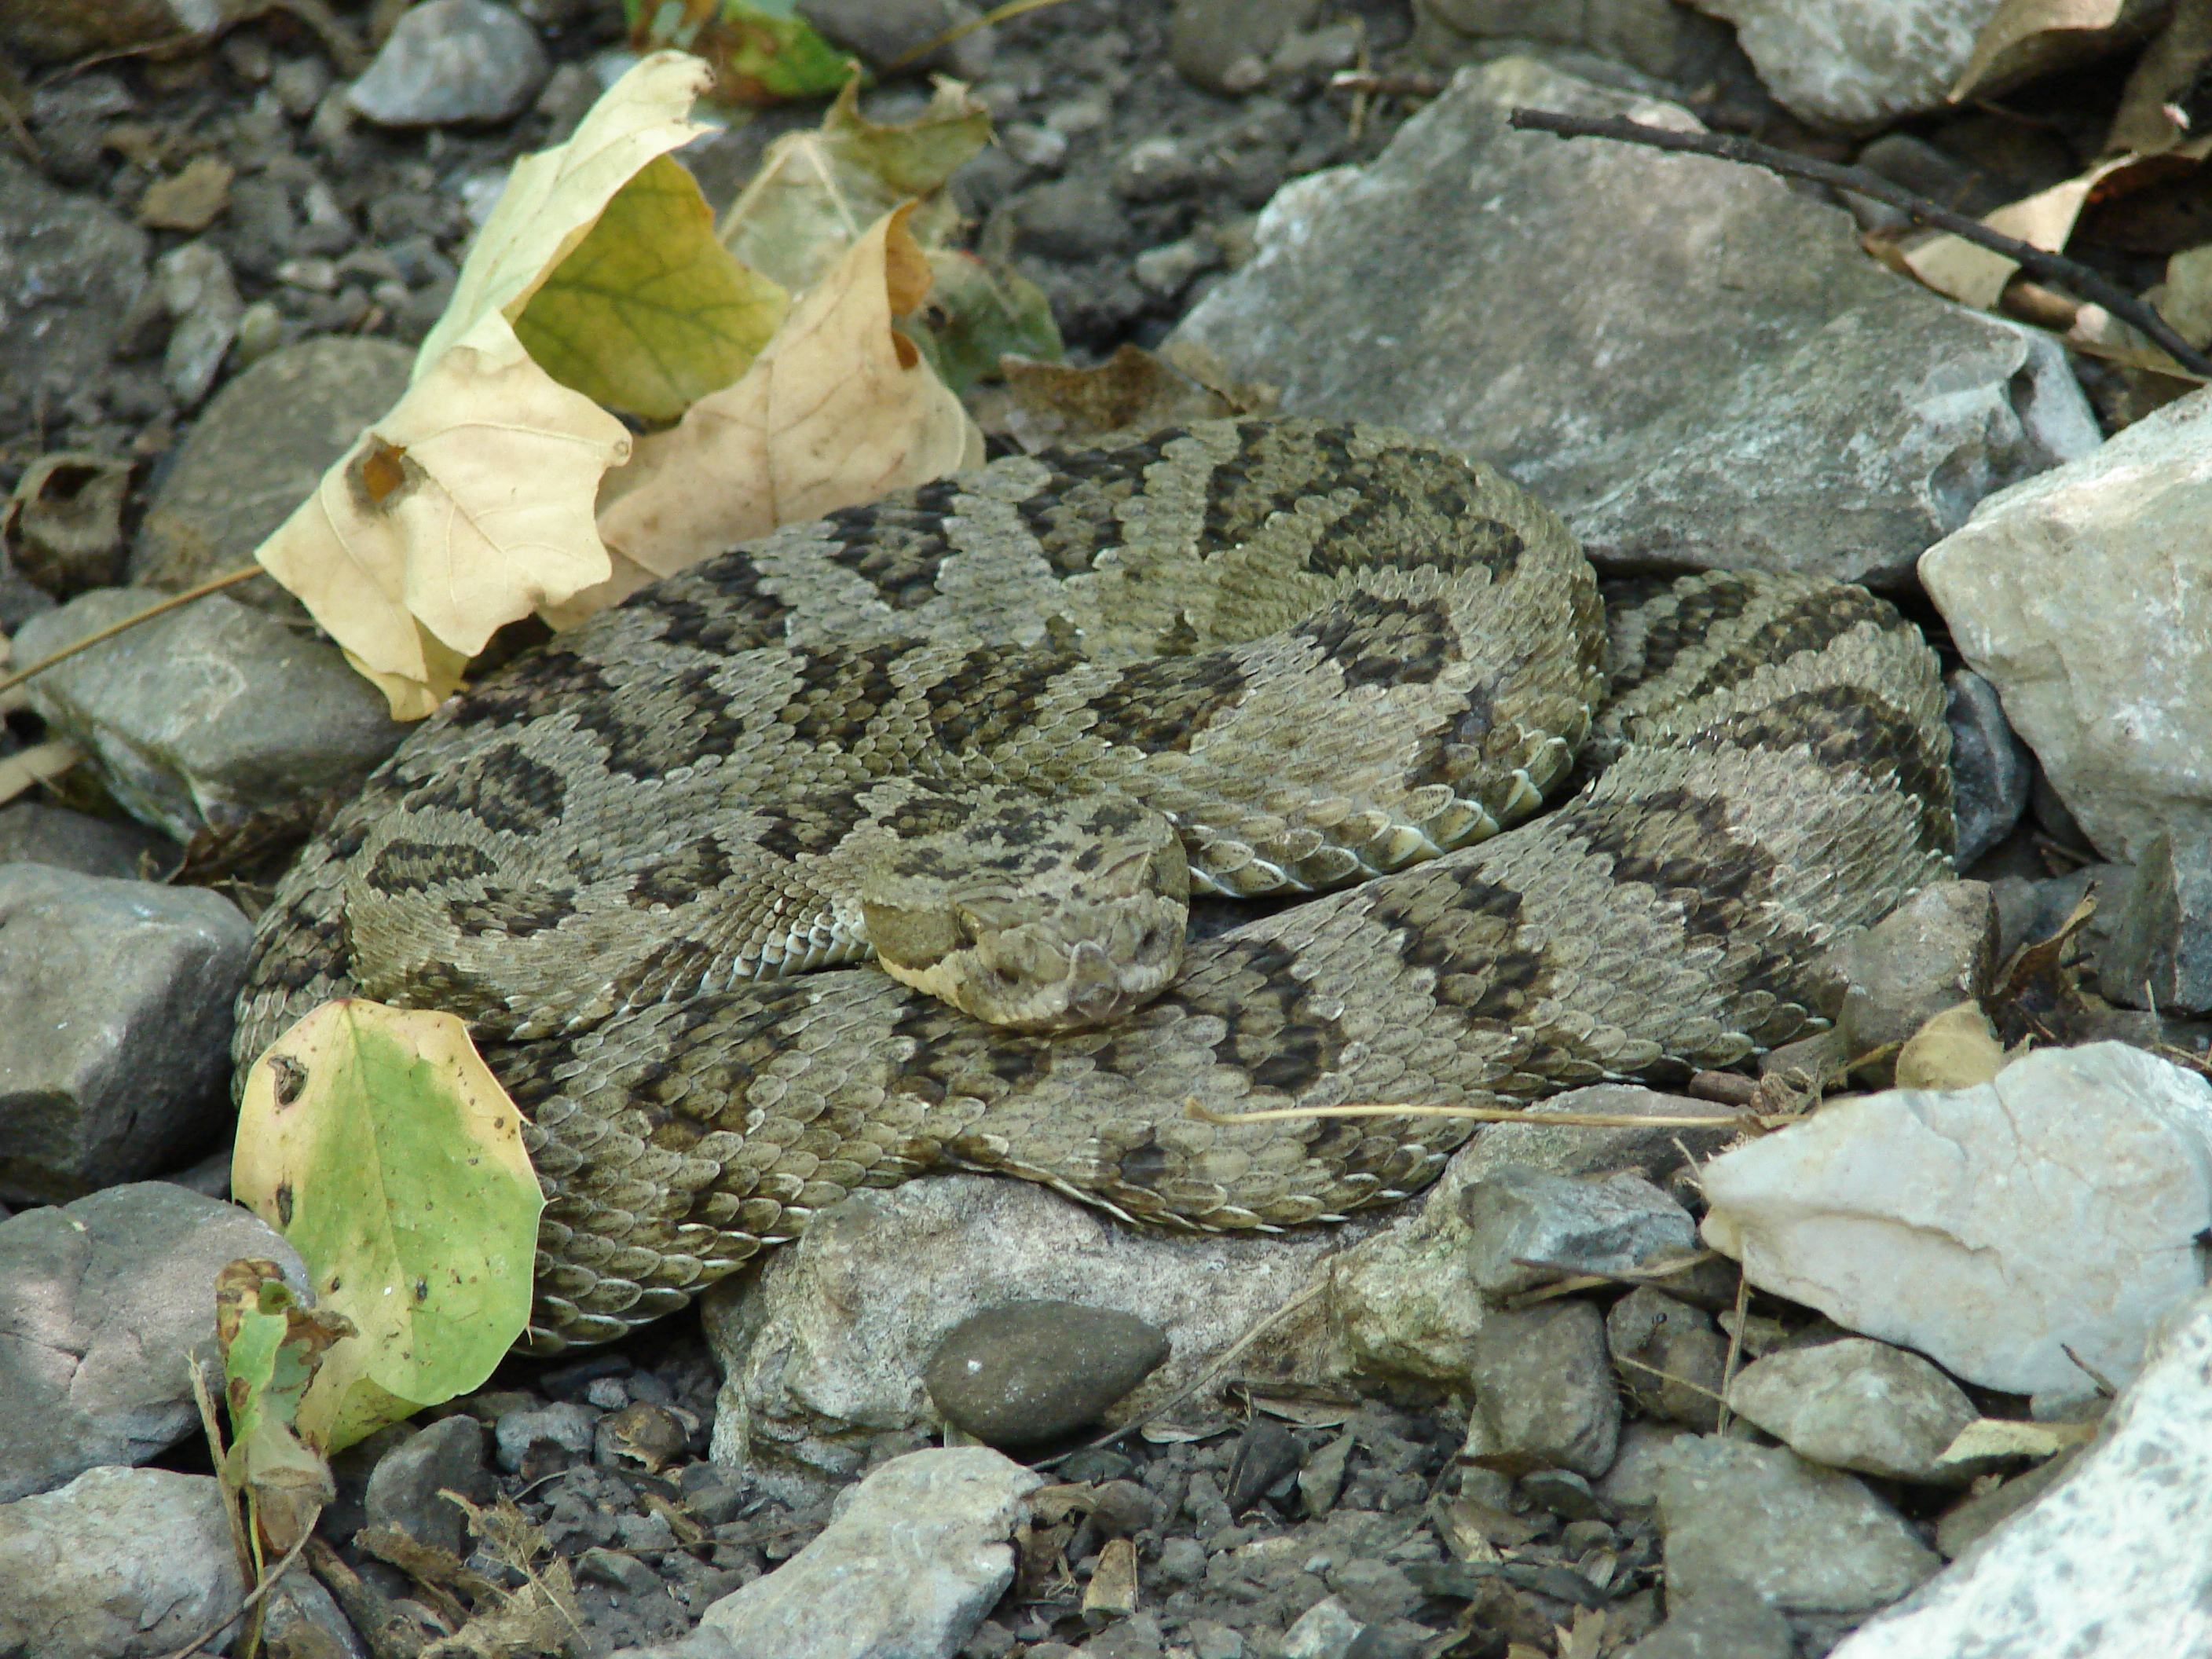 Rattlesnakes Archives - Wild About Utah